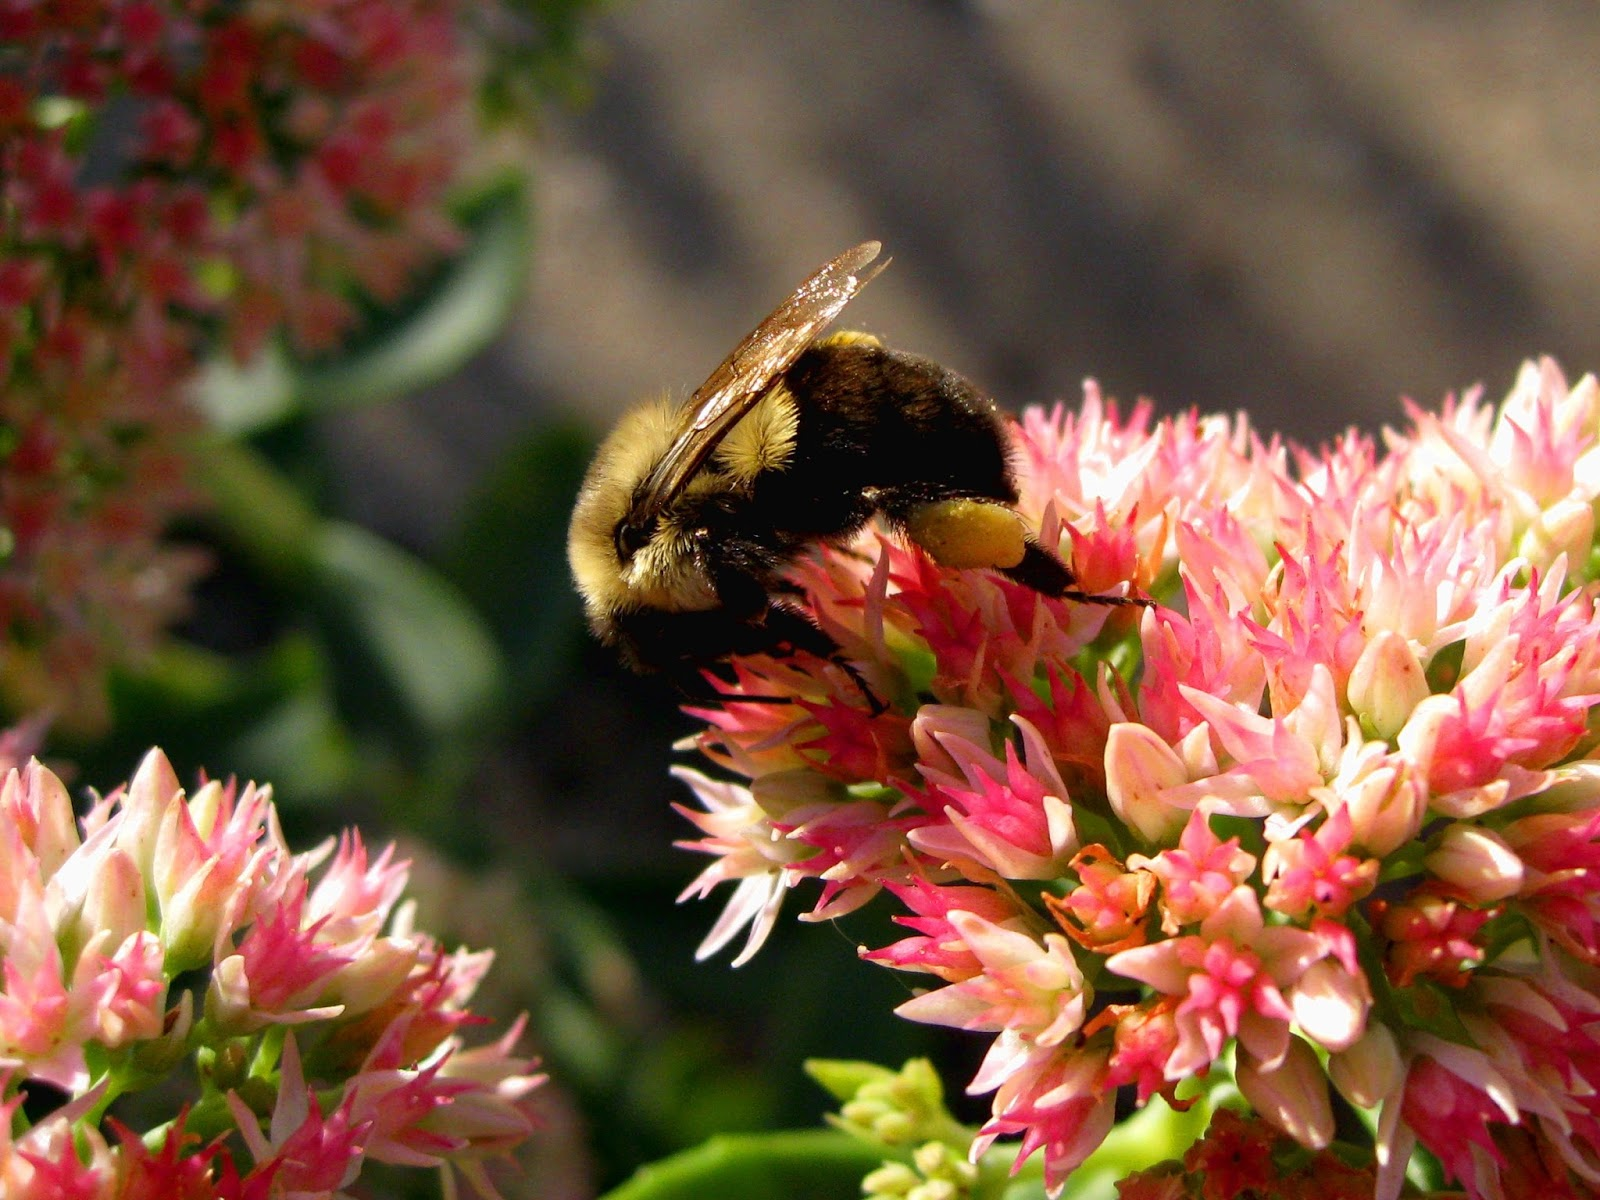 "Image ""Bumble_Bee_On_Sedum.jpg"" ©2013 K. R. Smith - www.theworldofkrsmith.com - may be used with attribution"